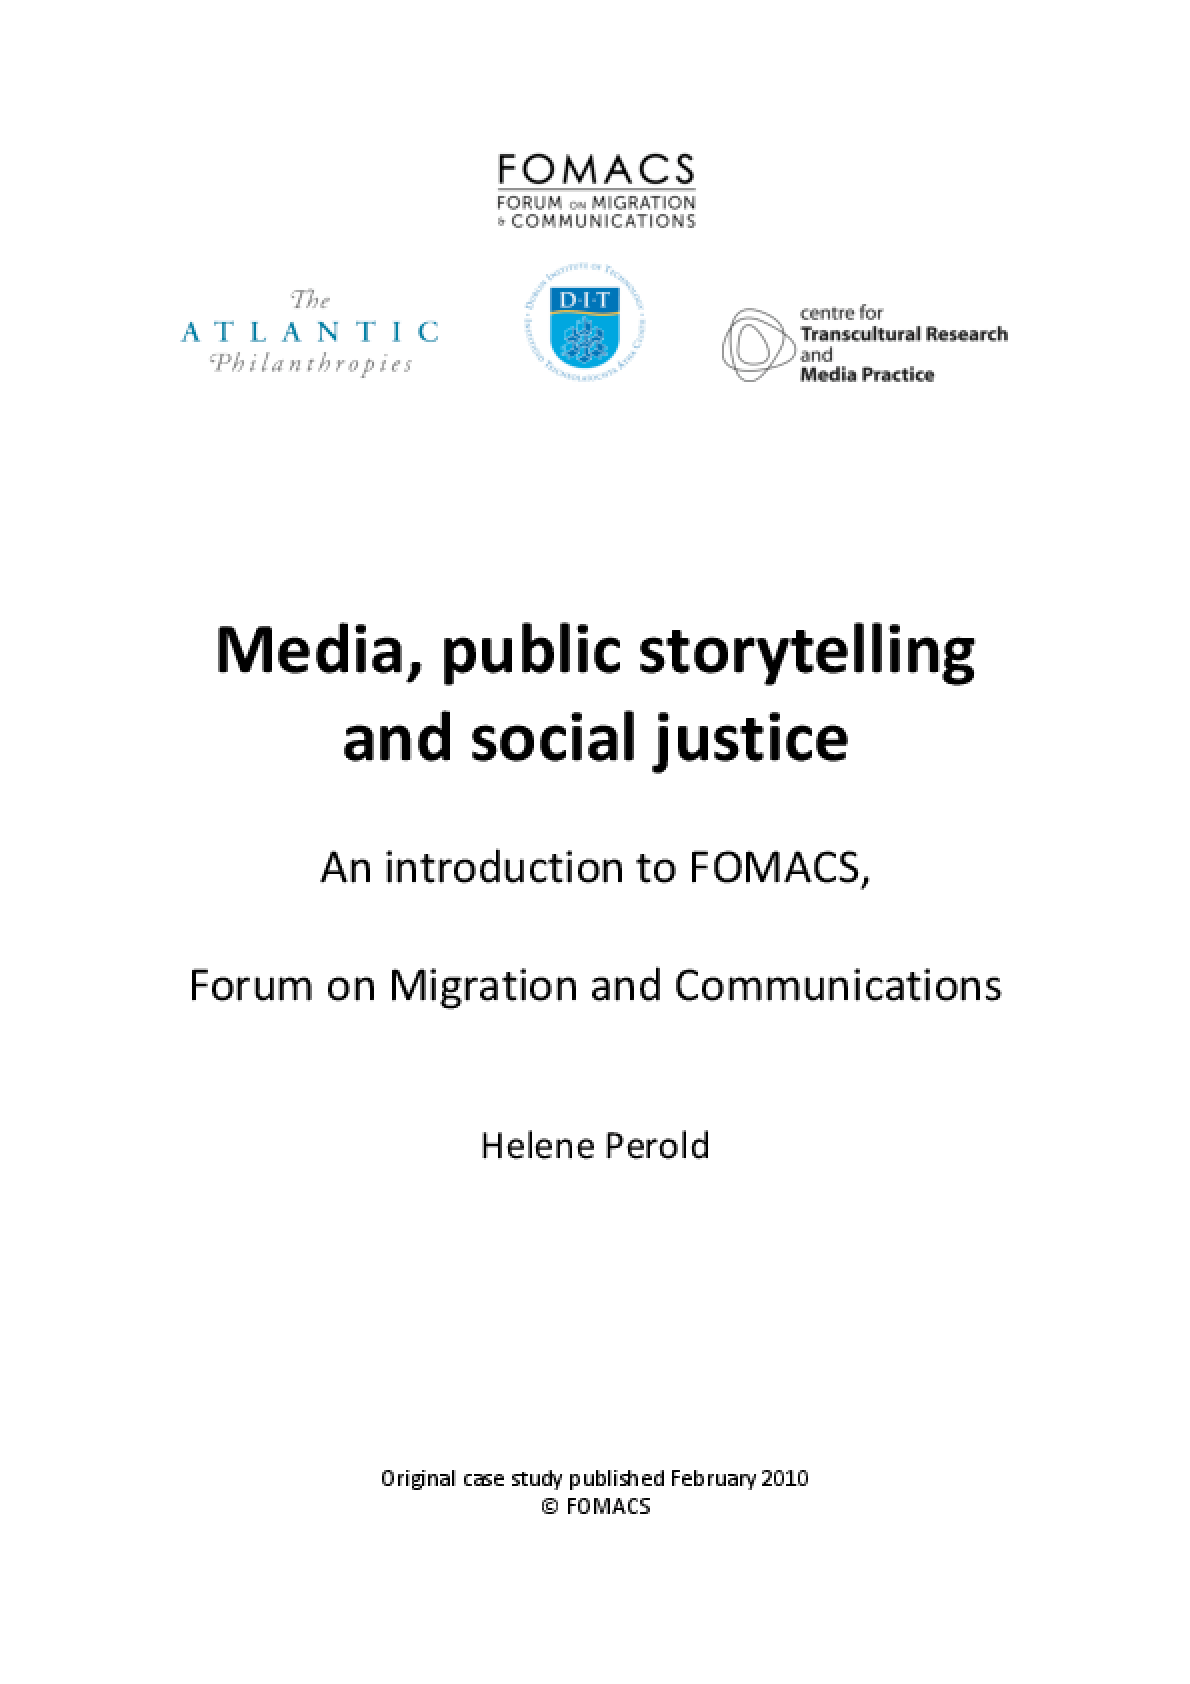 Media, Public Storytelling and Social Justice: An Introduction to FOMACS, Forum on Migration and Communications